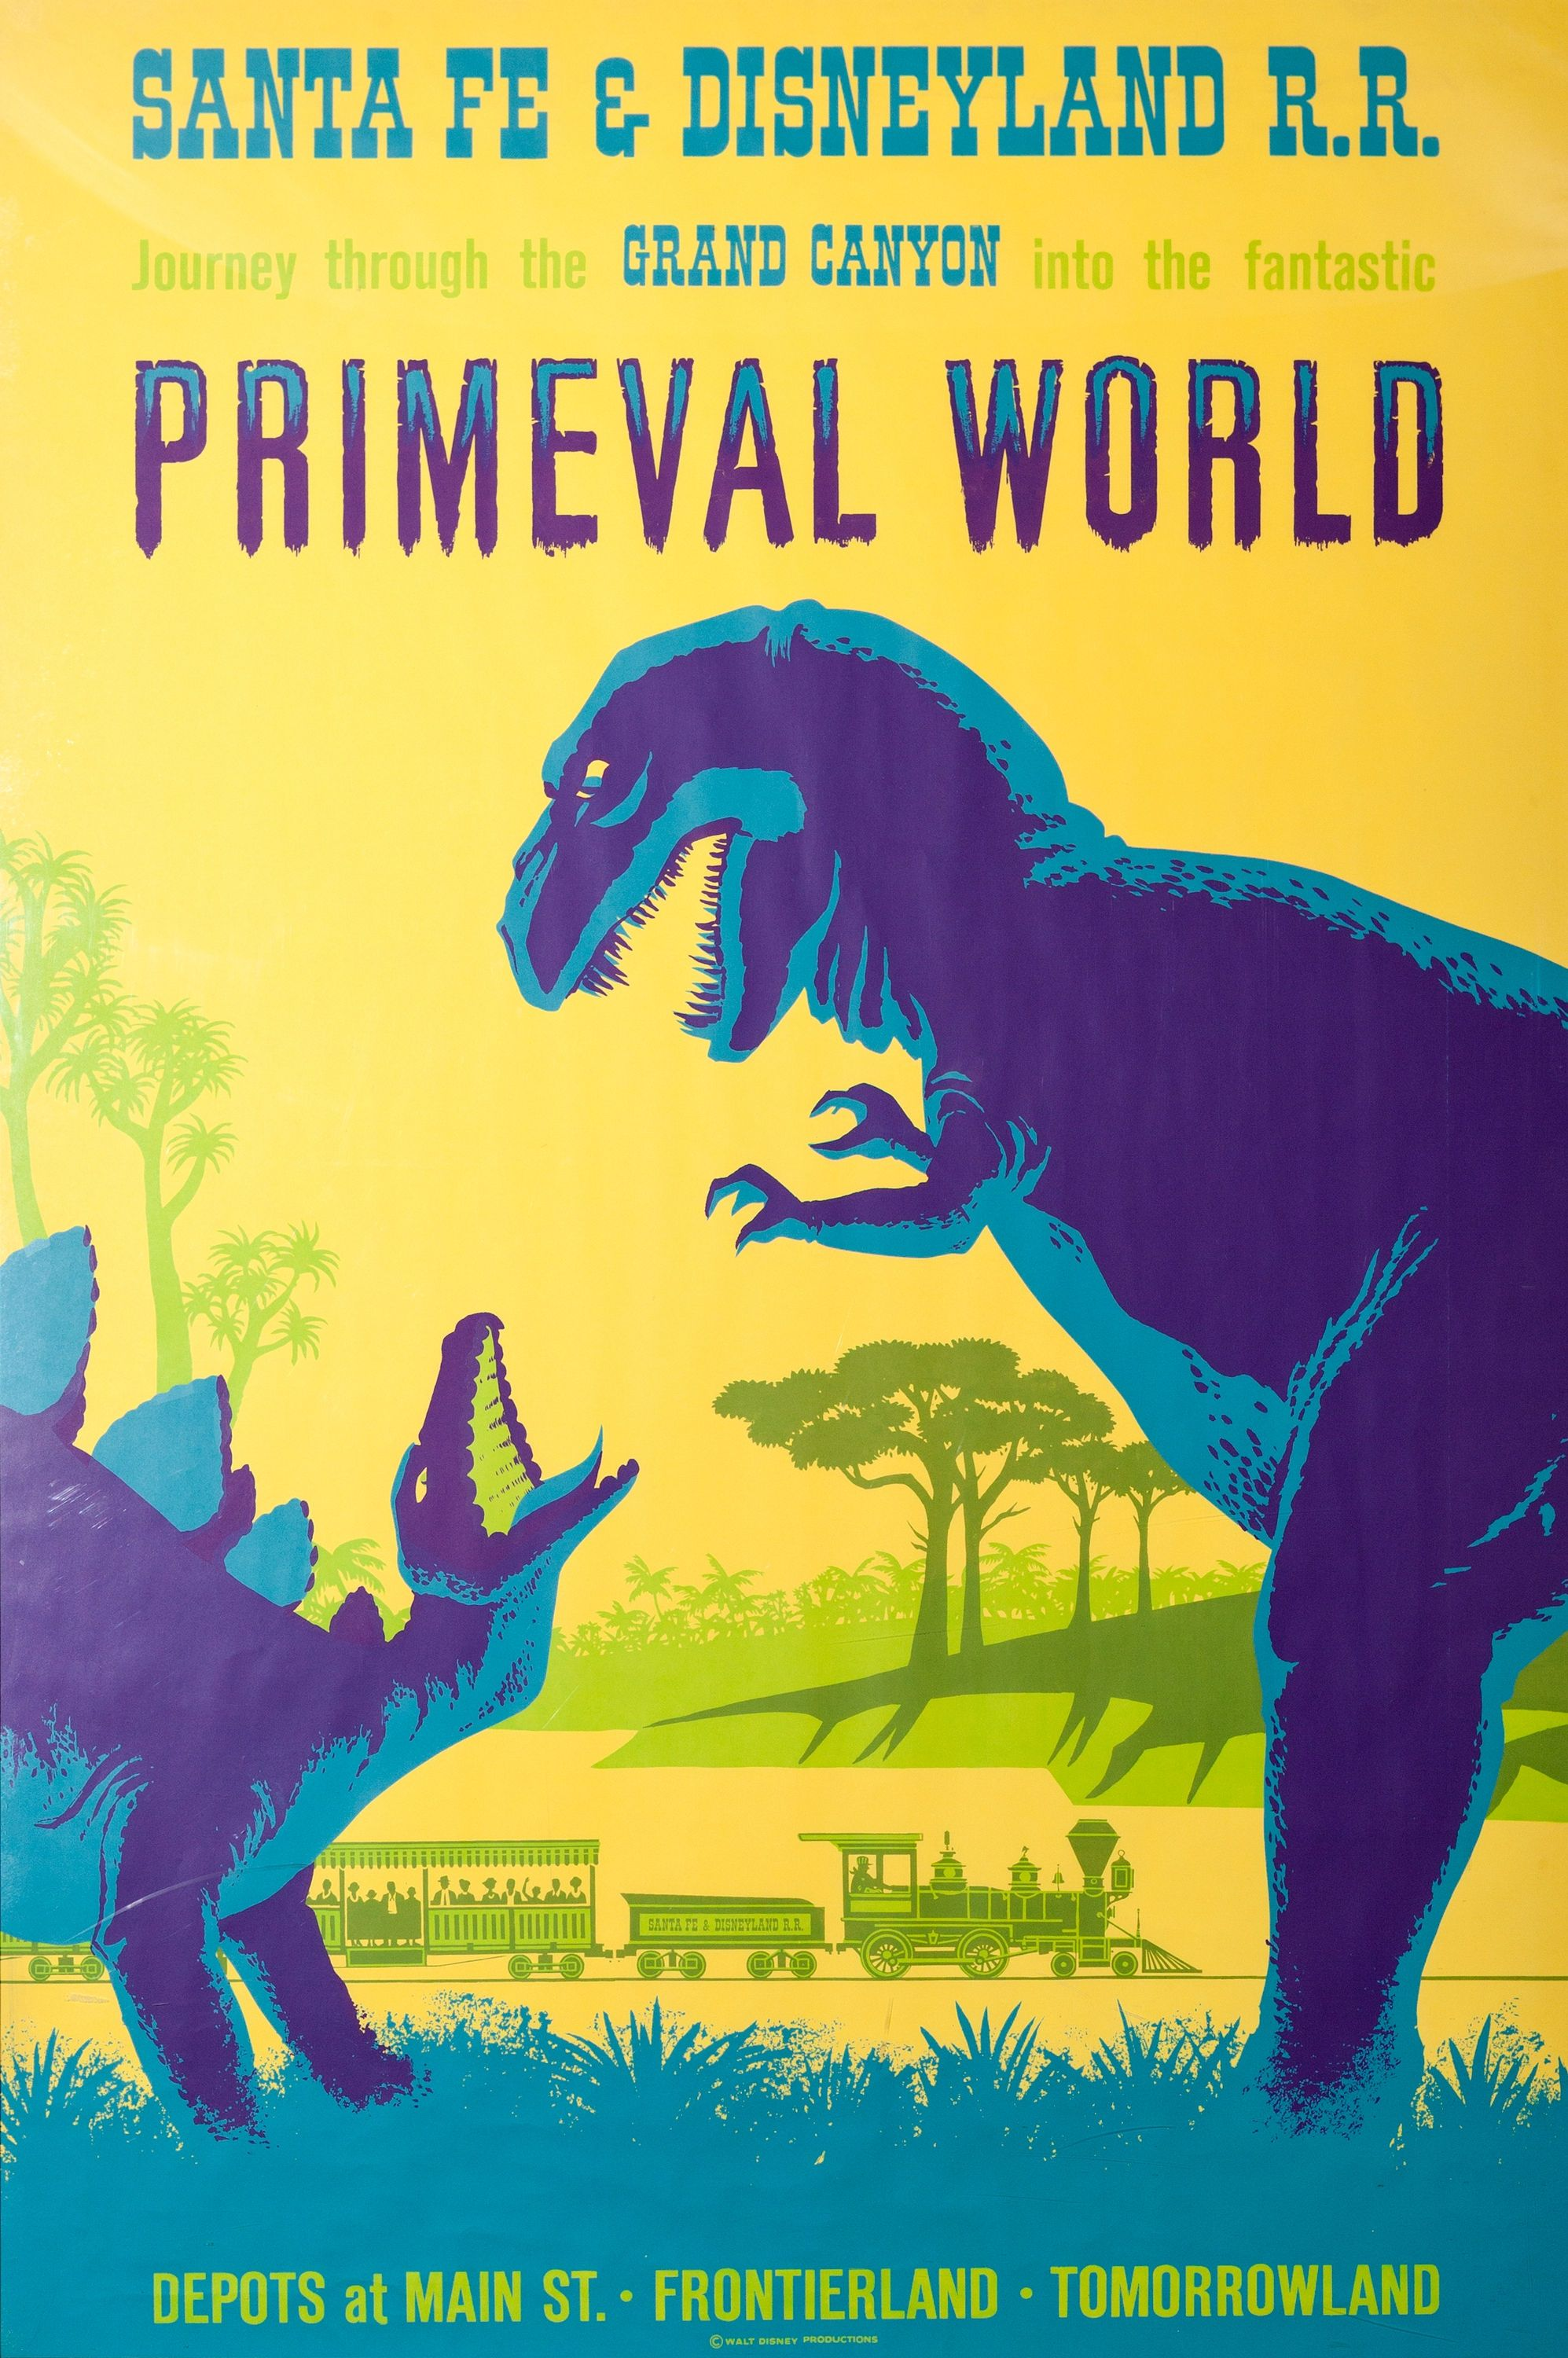 Disneyland Poster Primeval World Available in 5 Sizes